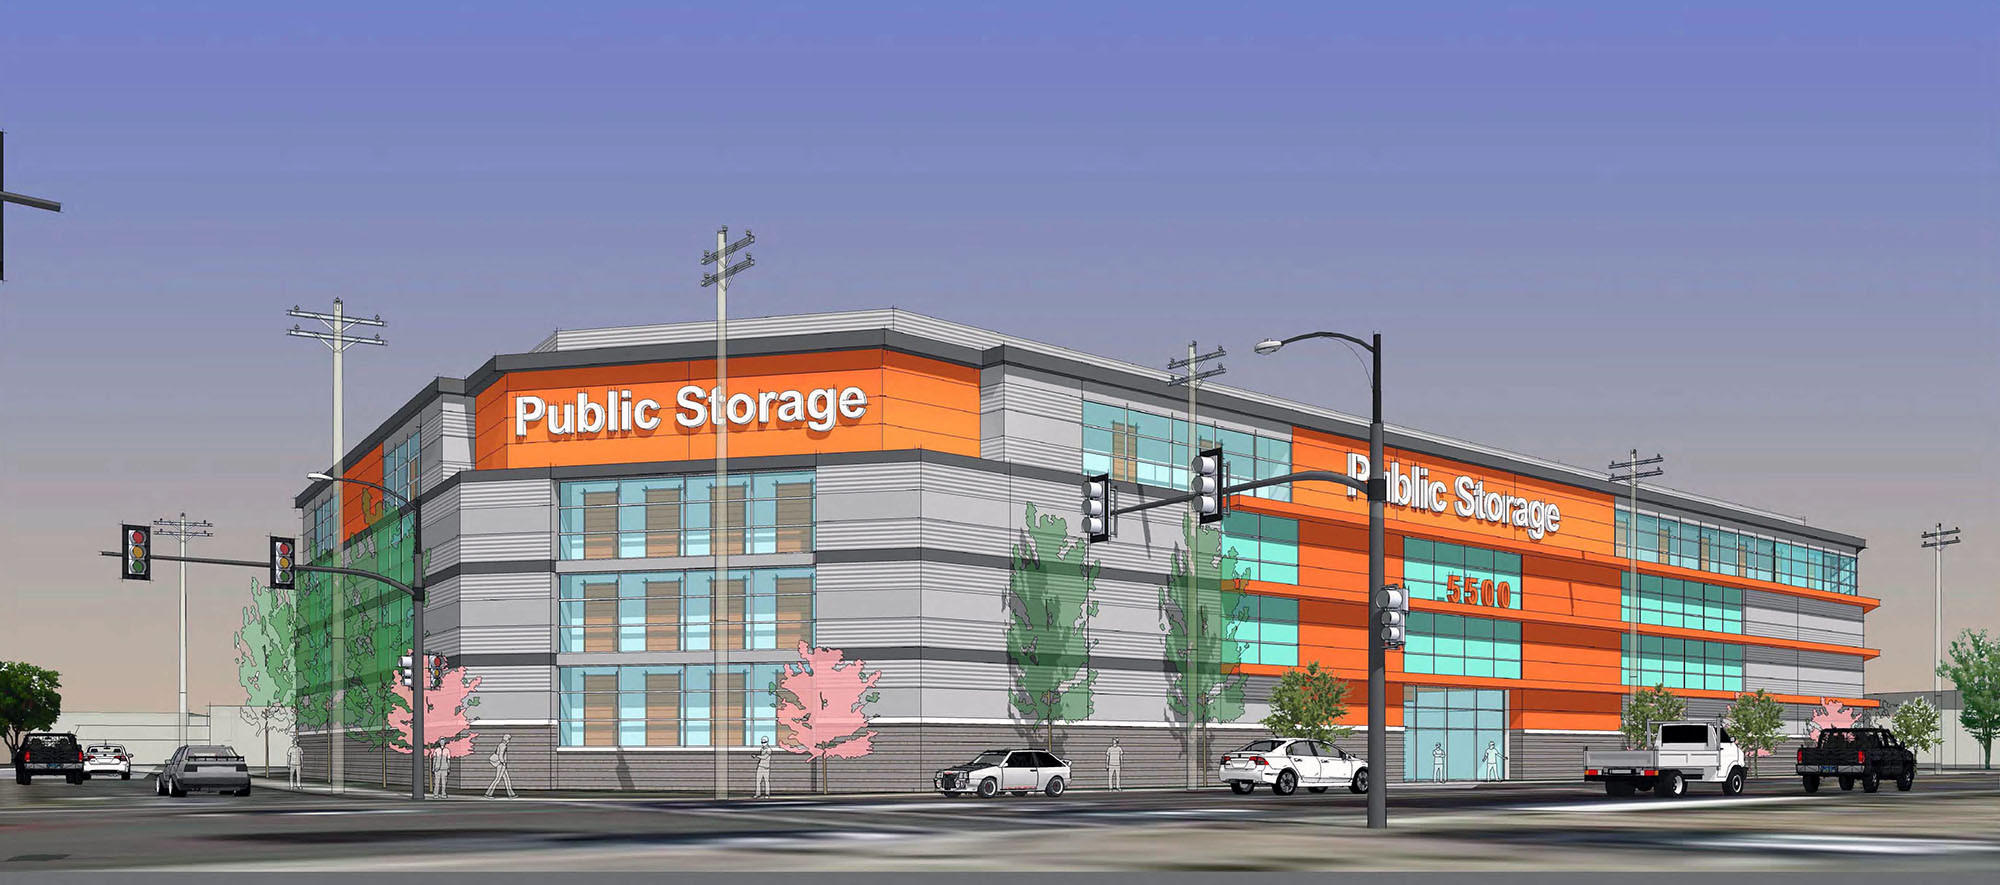 The Glendale City Council approved a a 174,266-square -foot Public Storage facility to be built in the 5500 block of San Fernando Road.